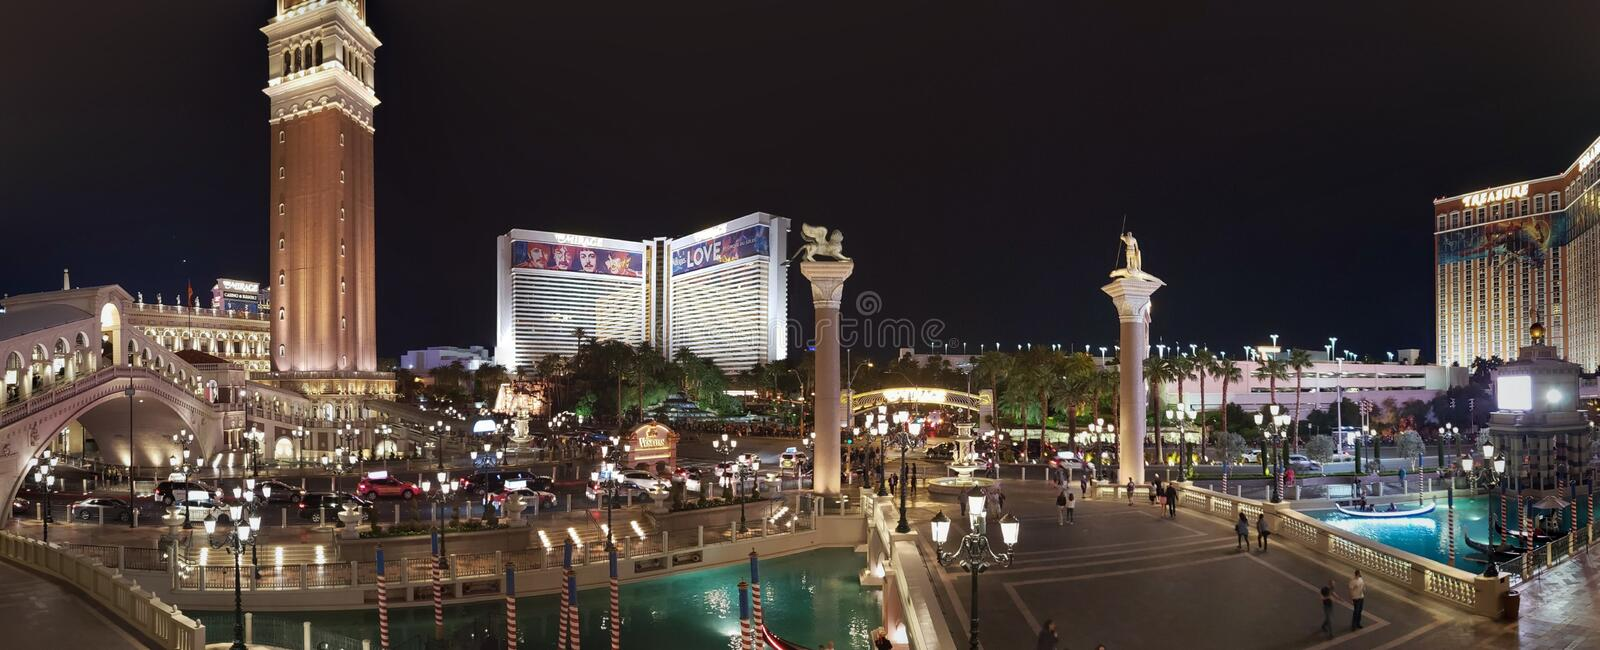 view from the Venetian Hotel in the city of Las Vegas at night stock photo